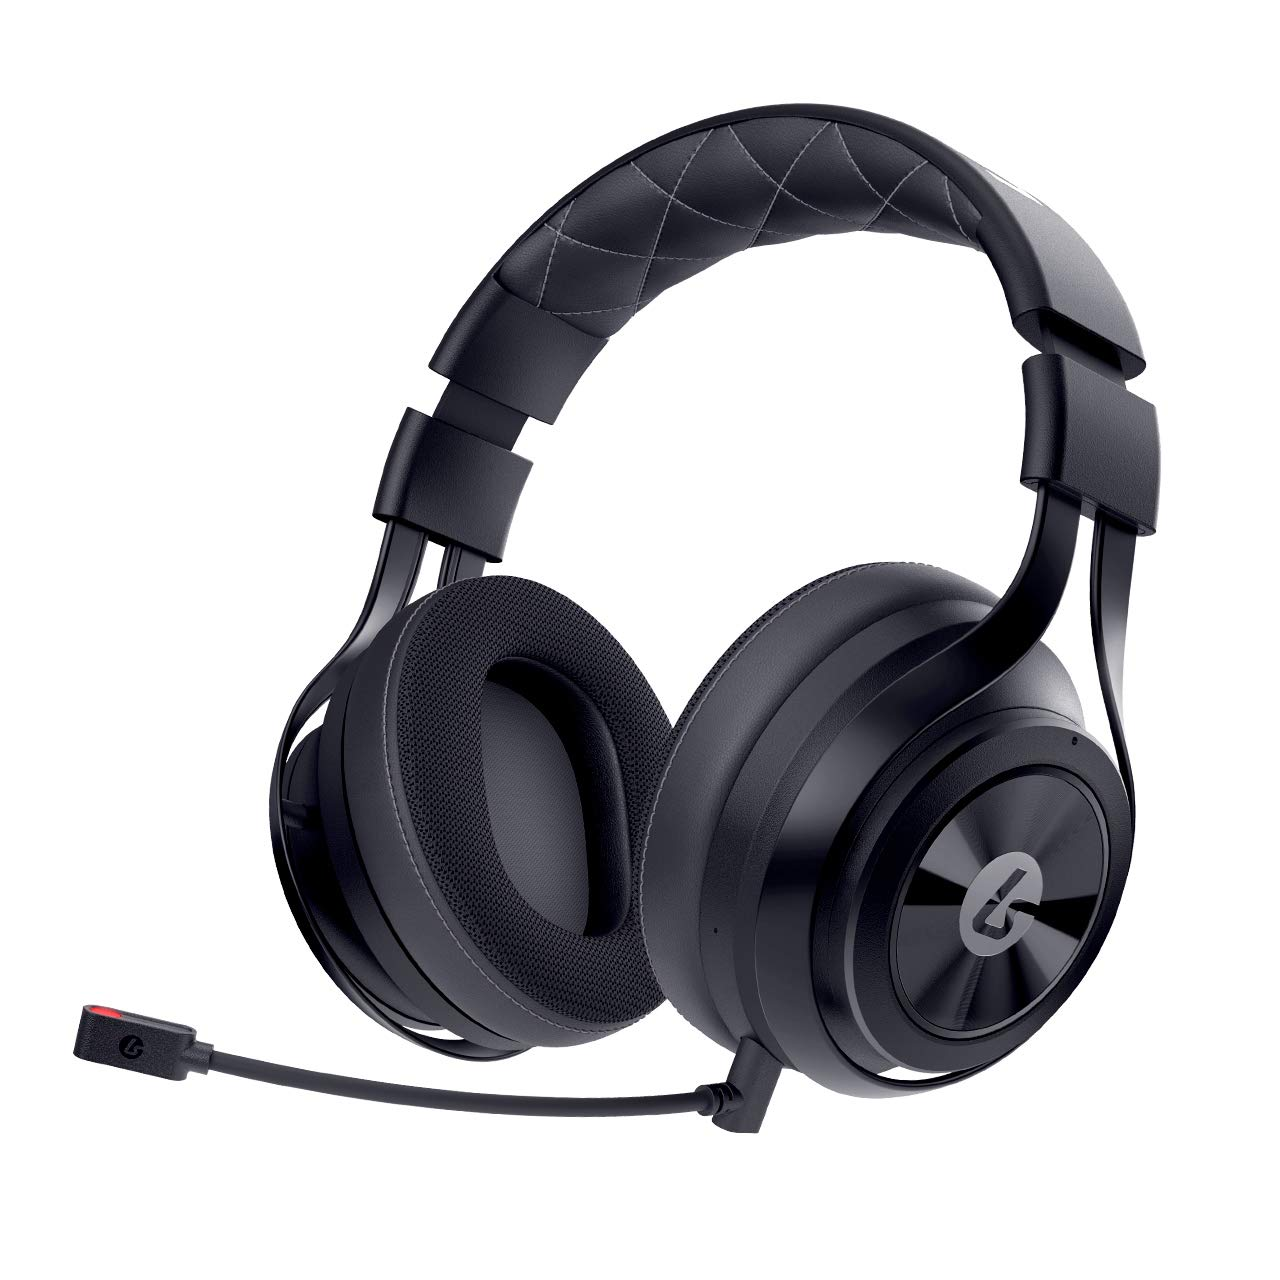 LS35X Wireless Surround Sound Gaming Headset - Officially...